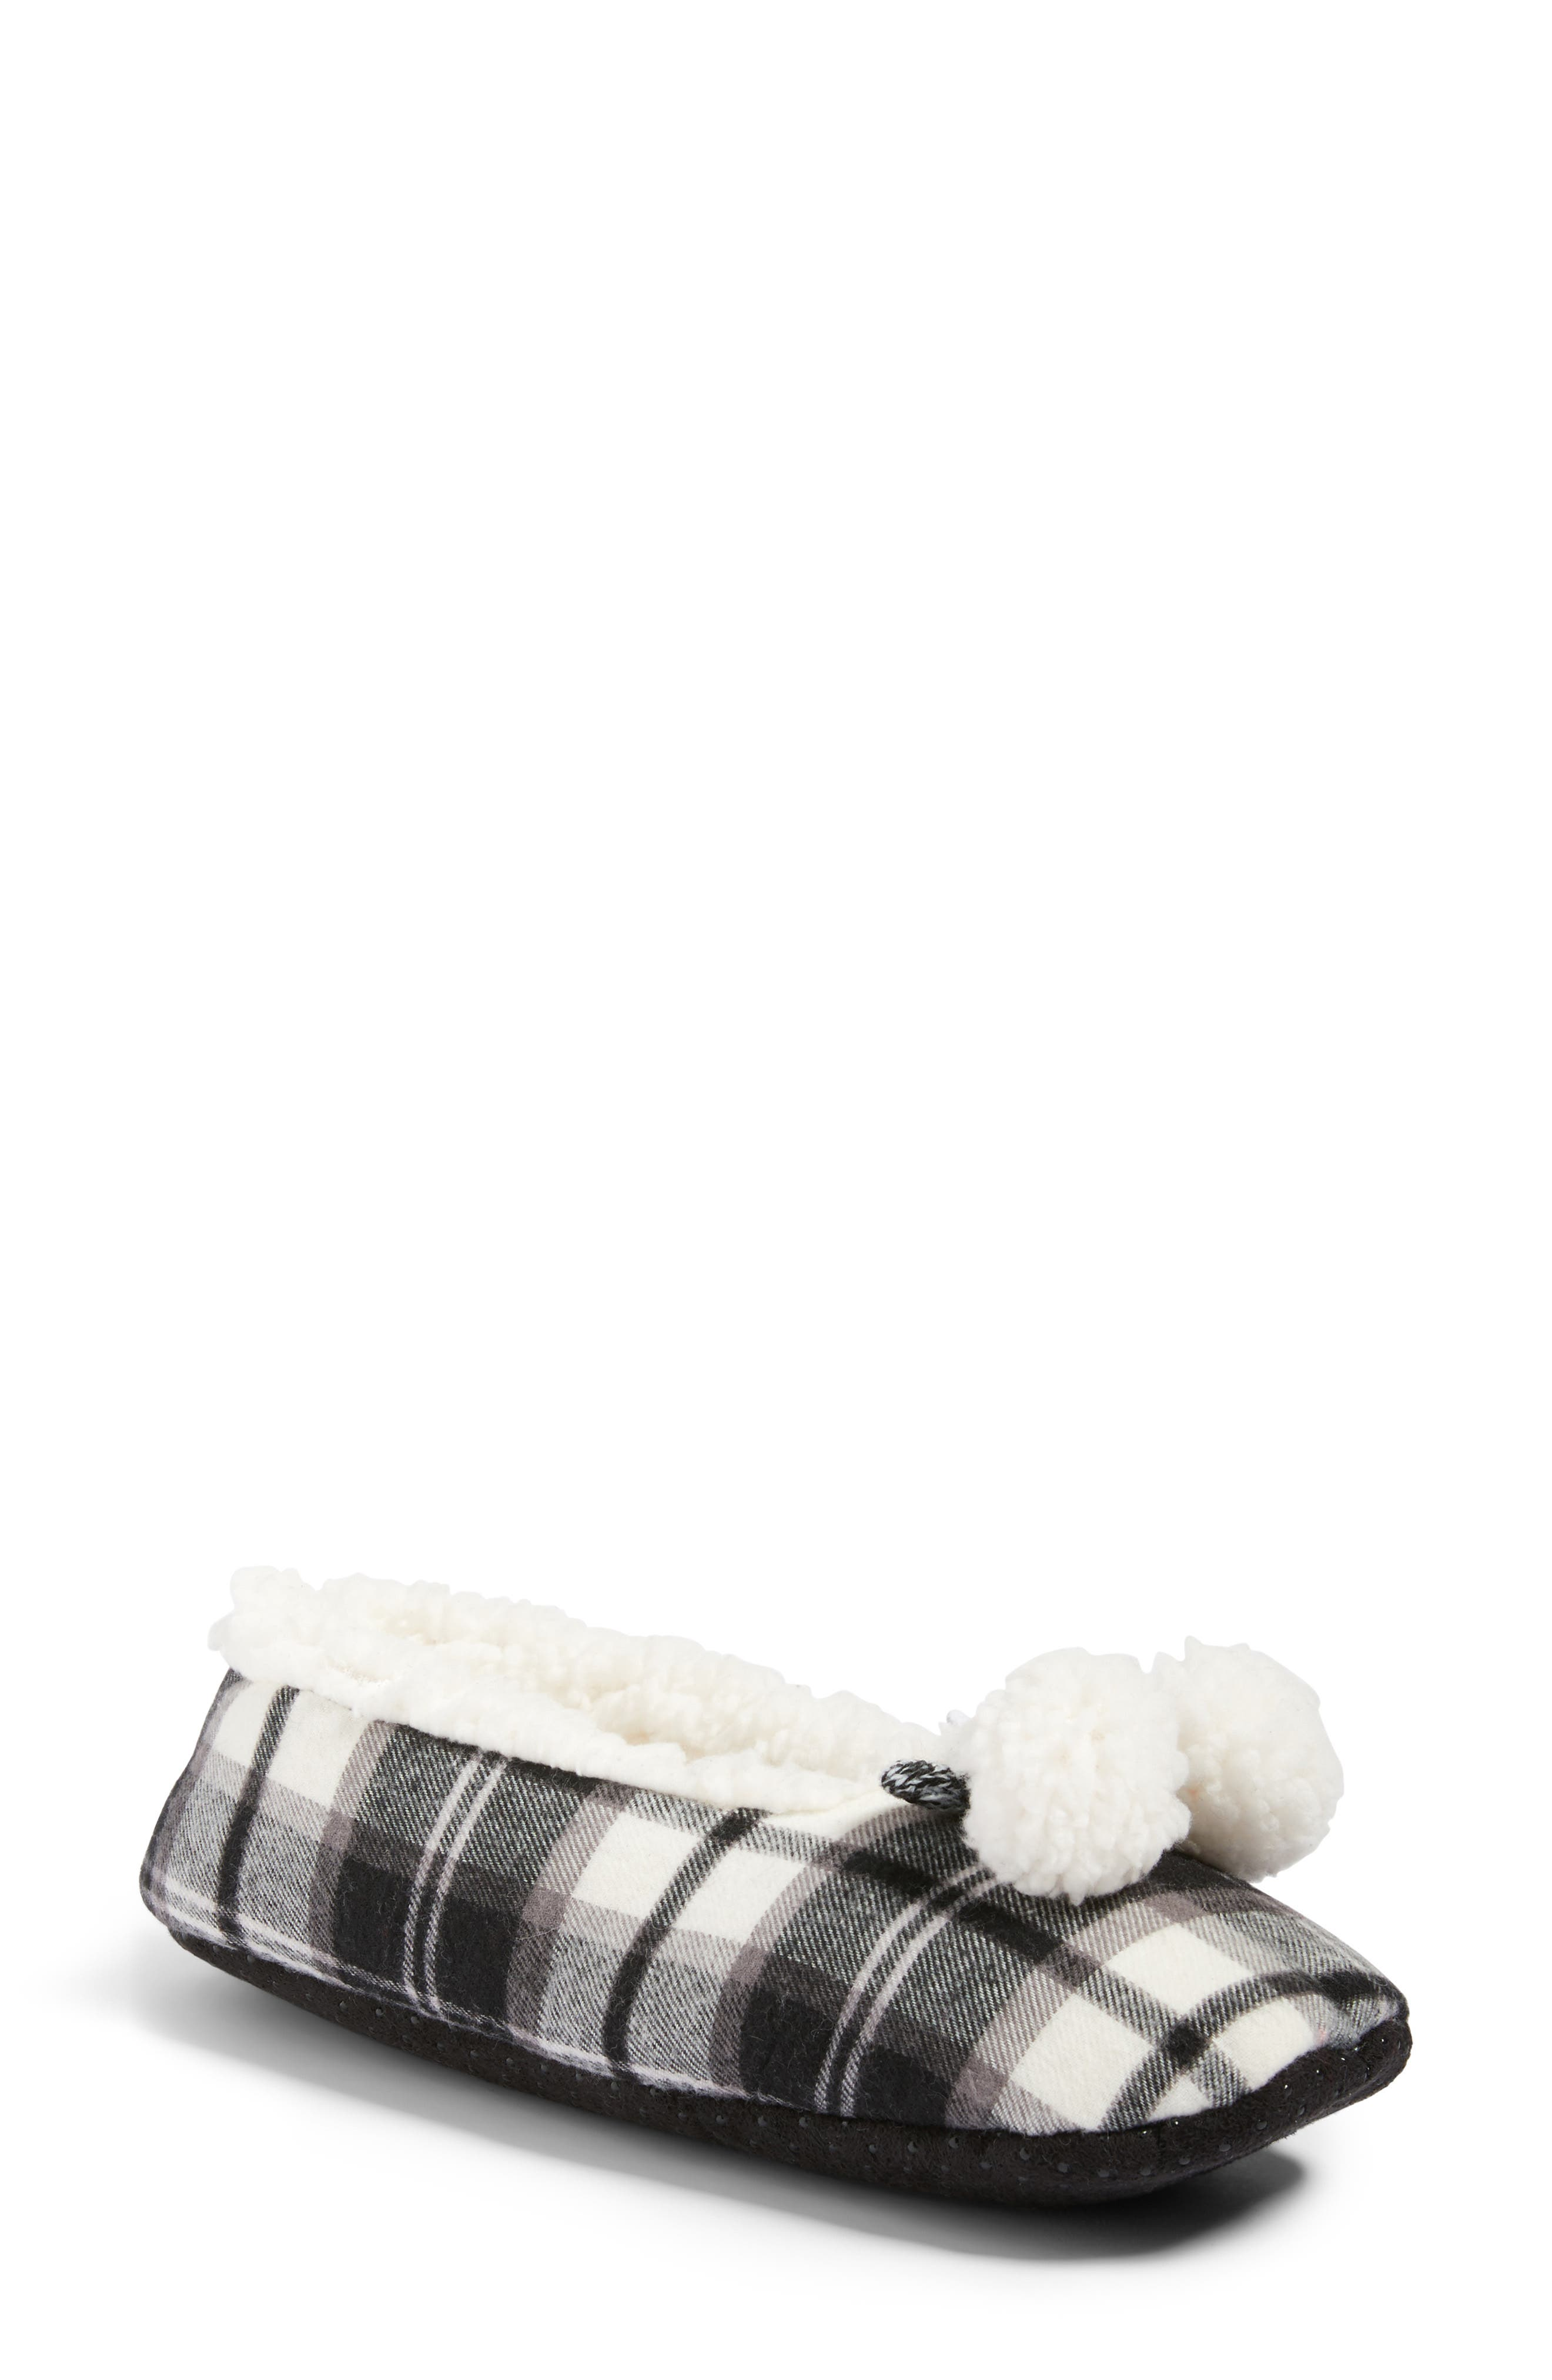 Plaid Slippers,                         Main,                         color, 002